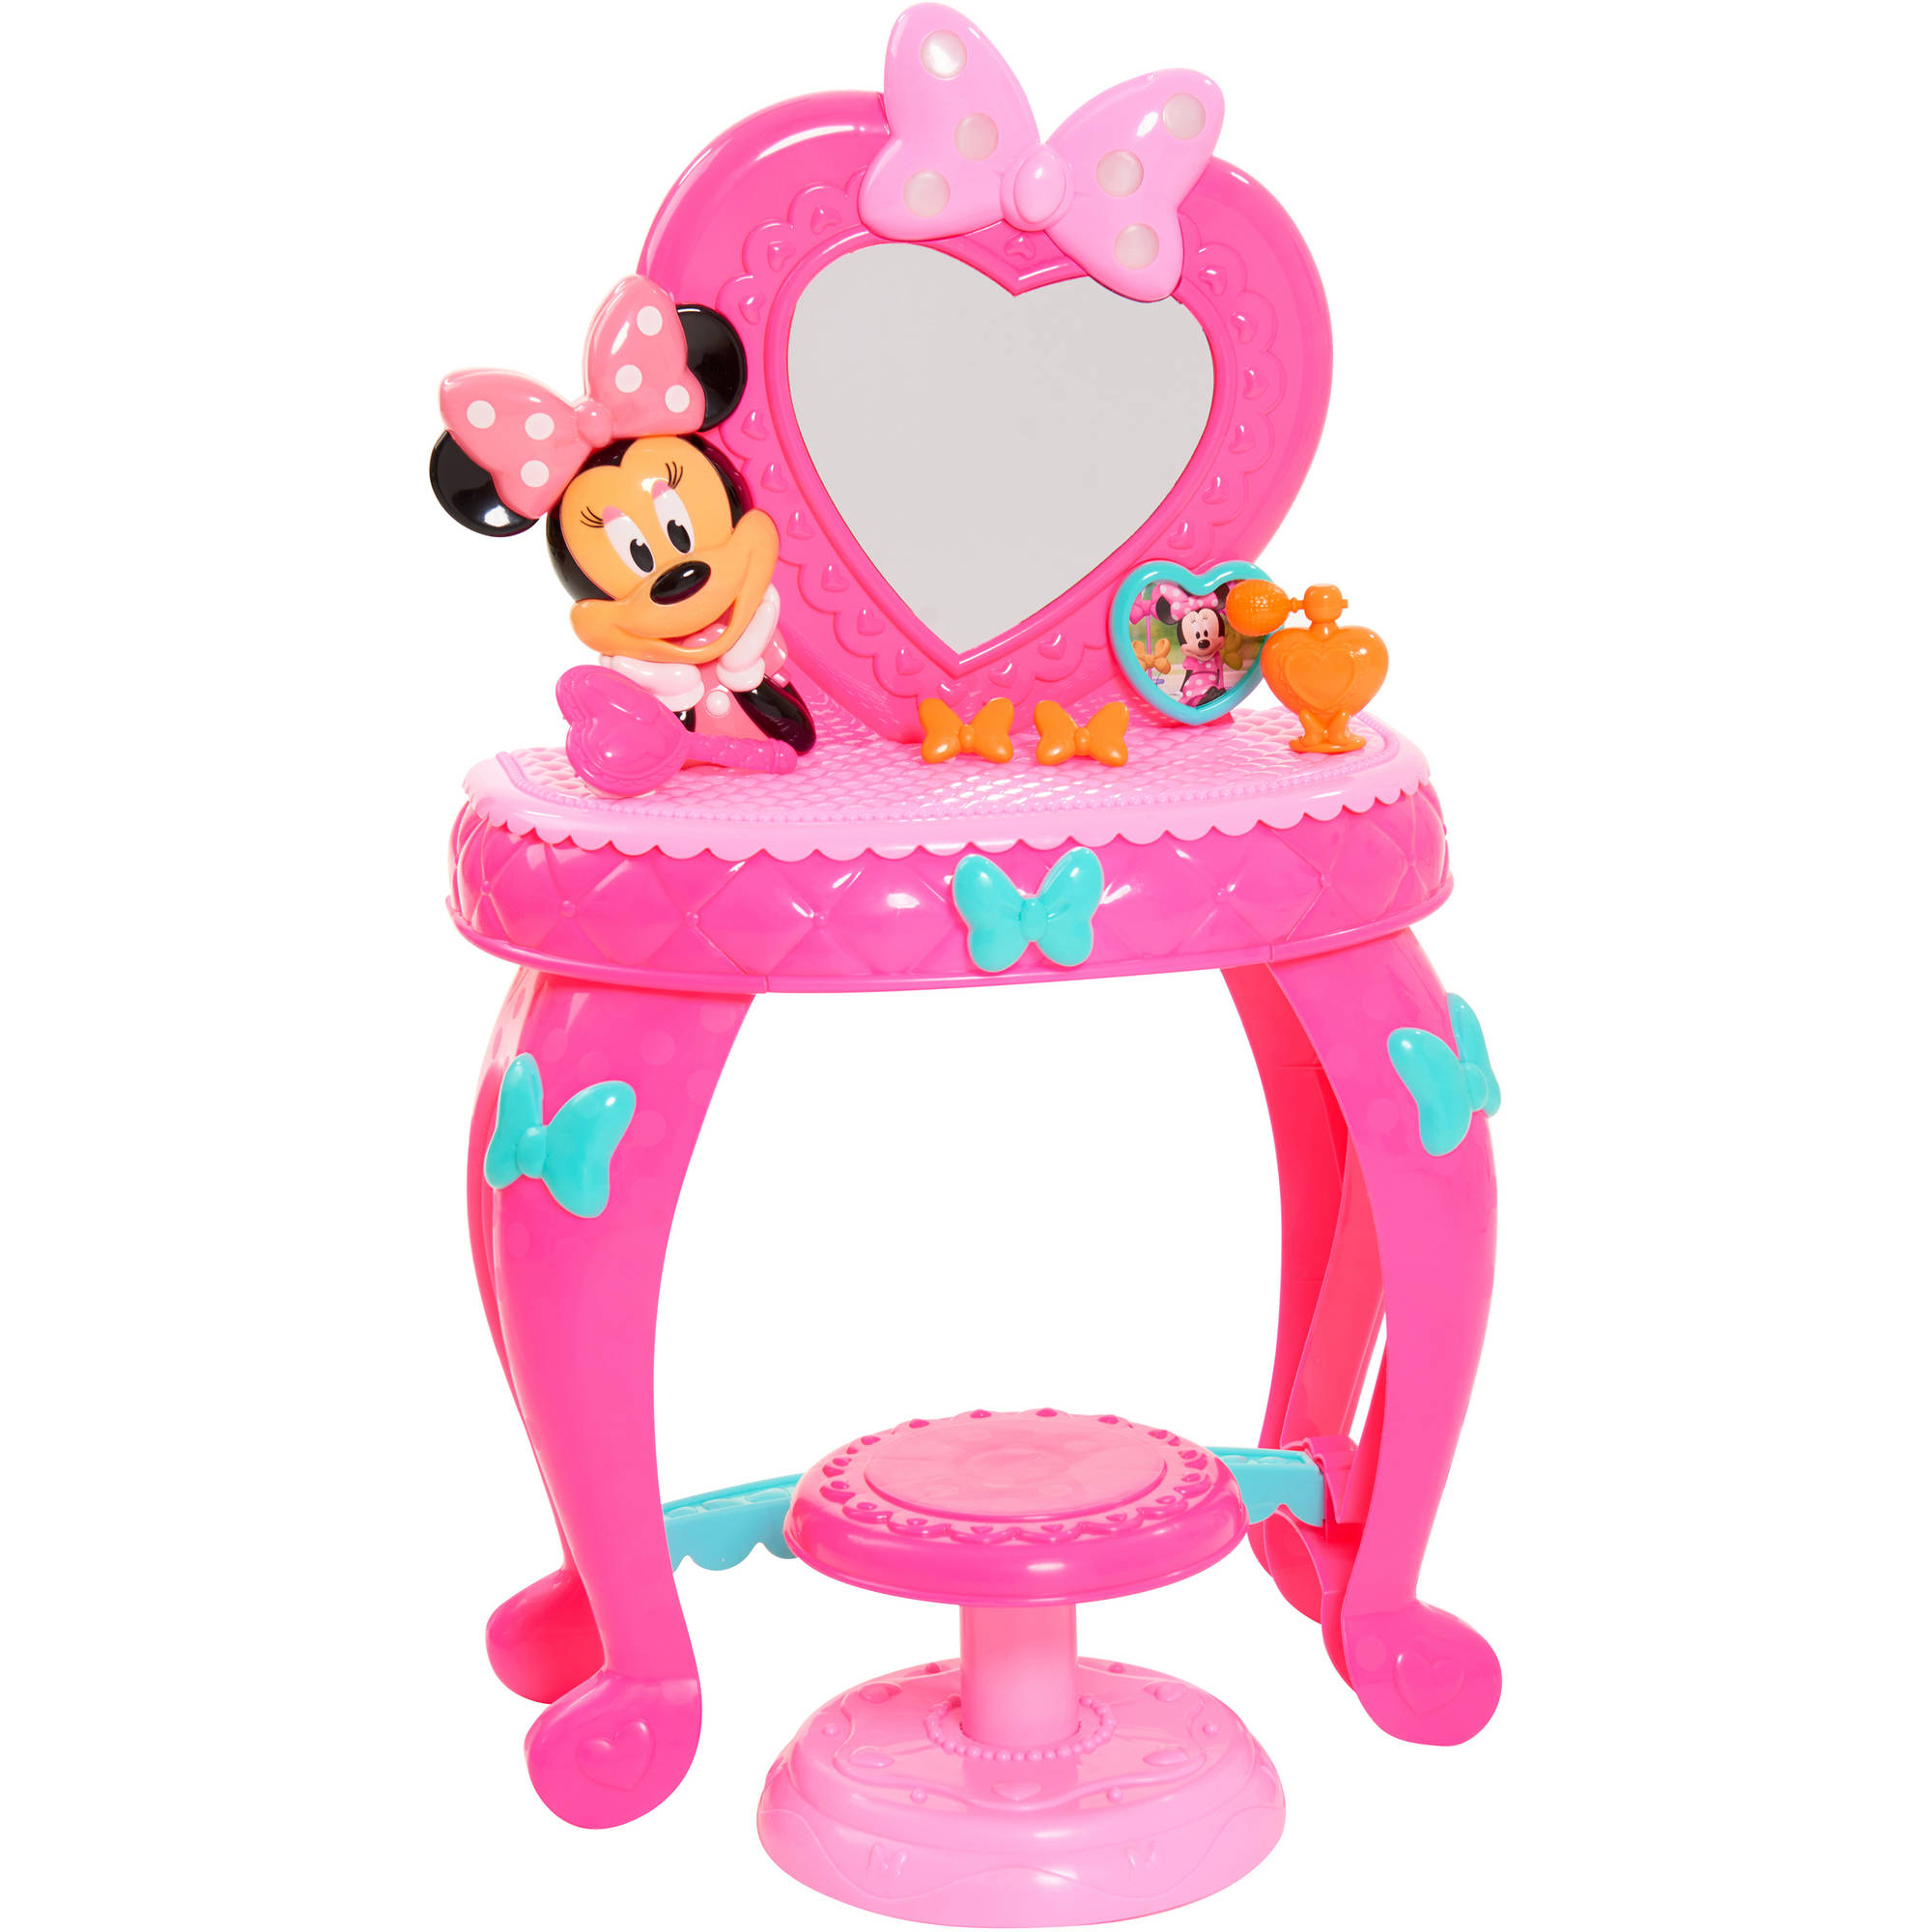 Disney Minnie Bow Tique Bowdazzling Vanity Girls Pink Xmas New Ebay